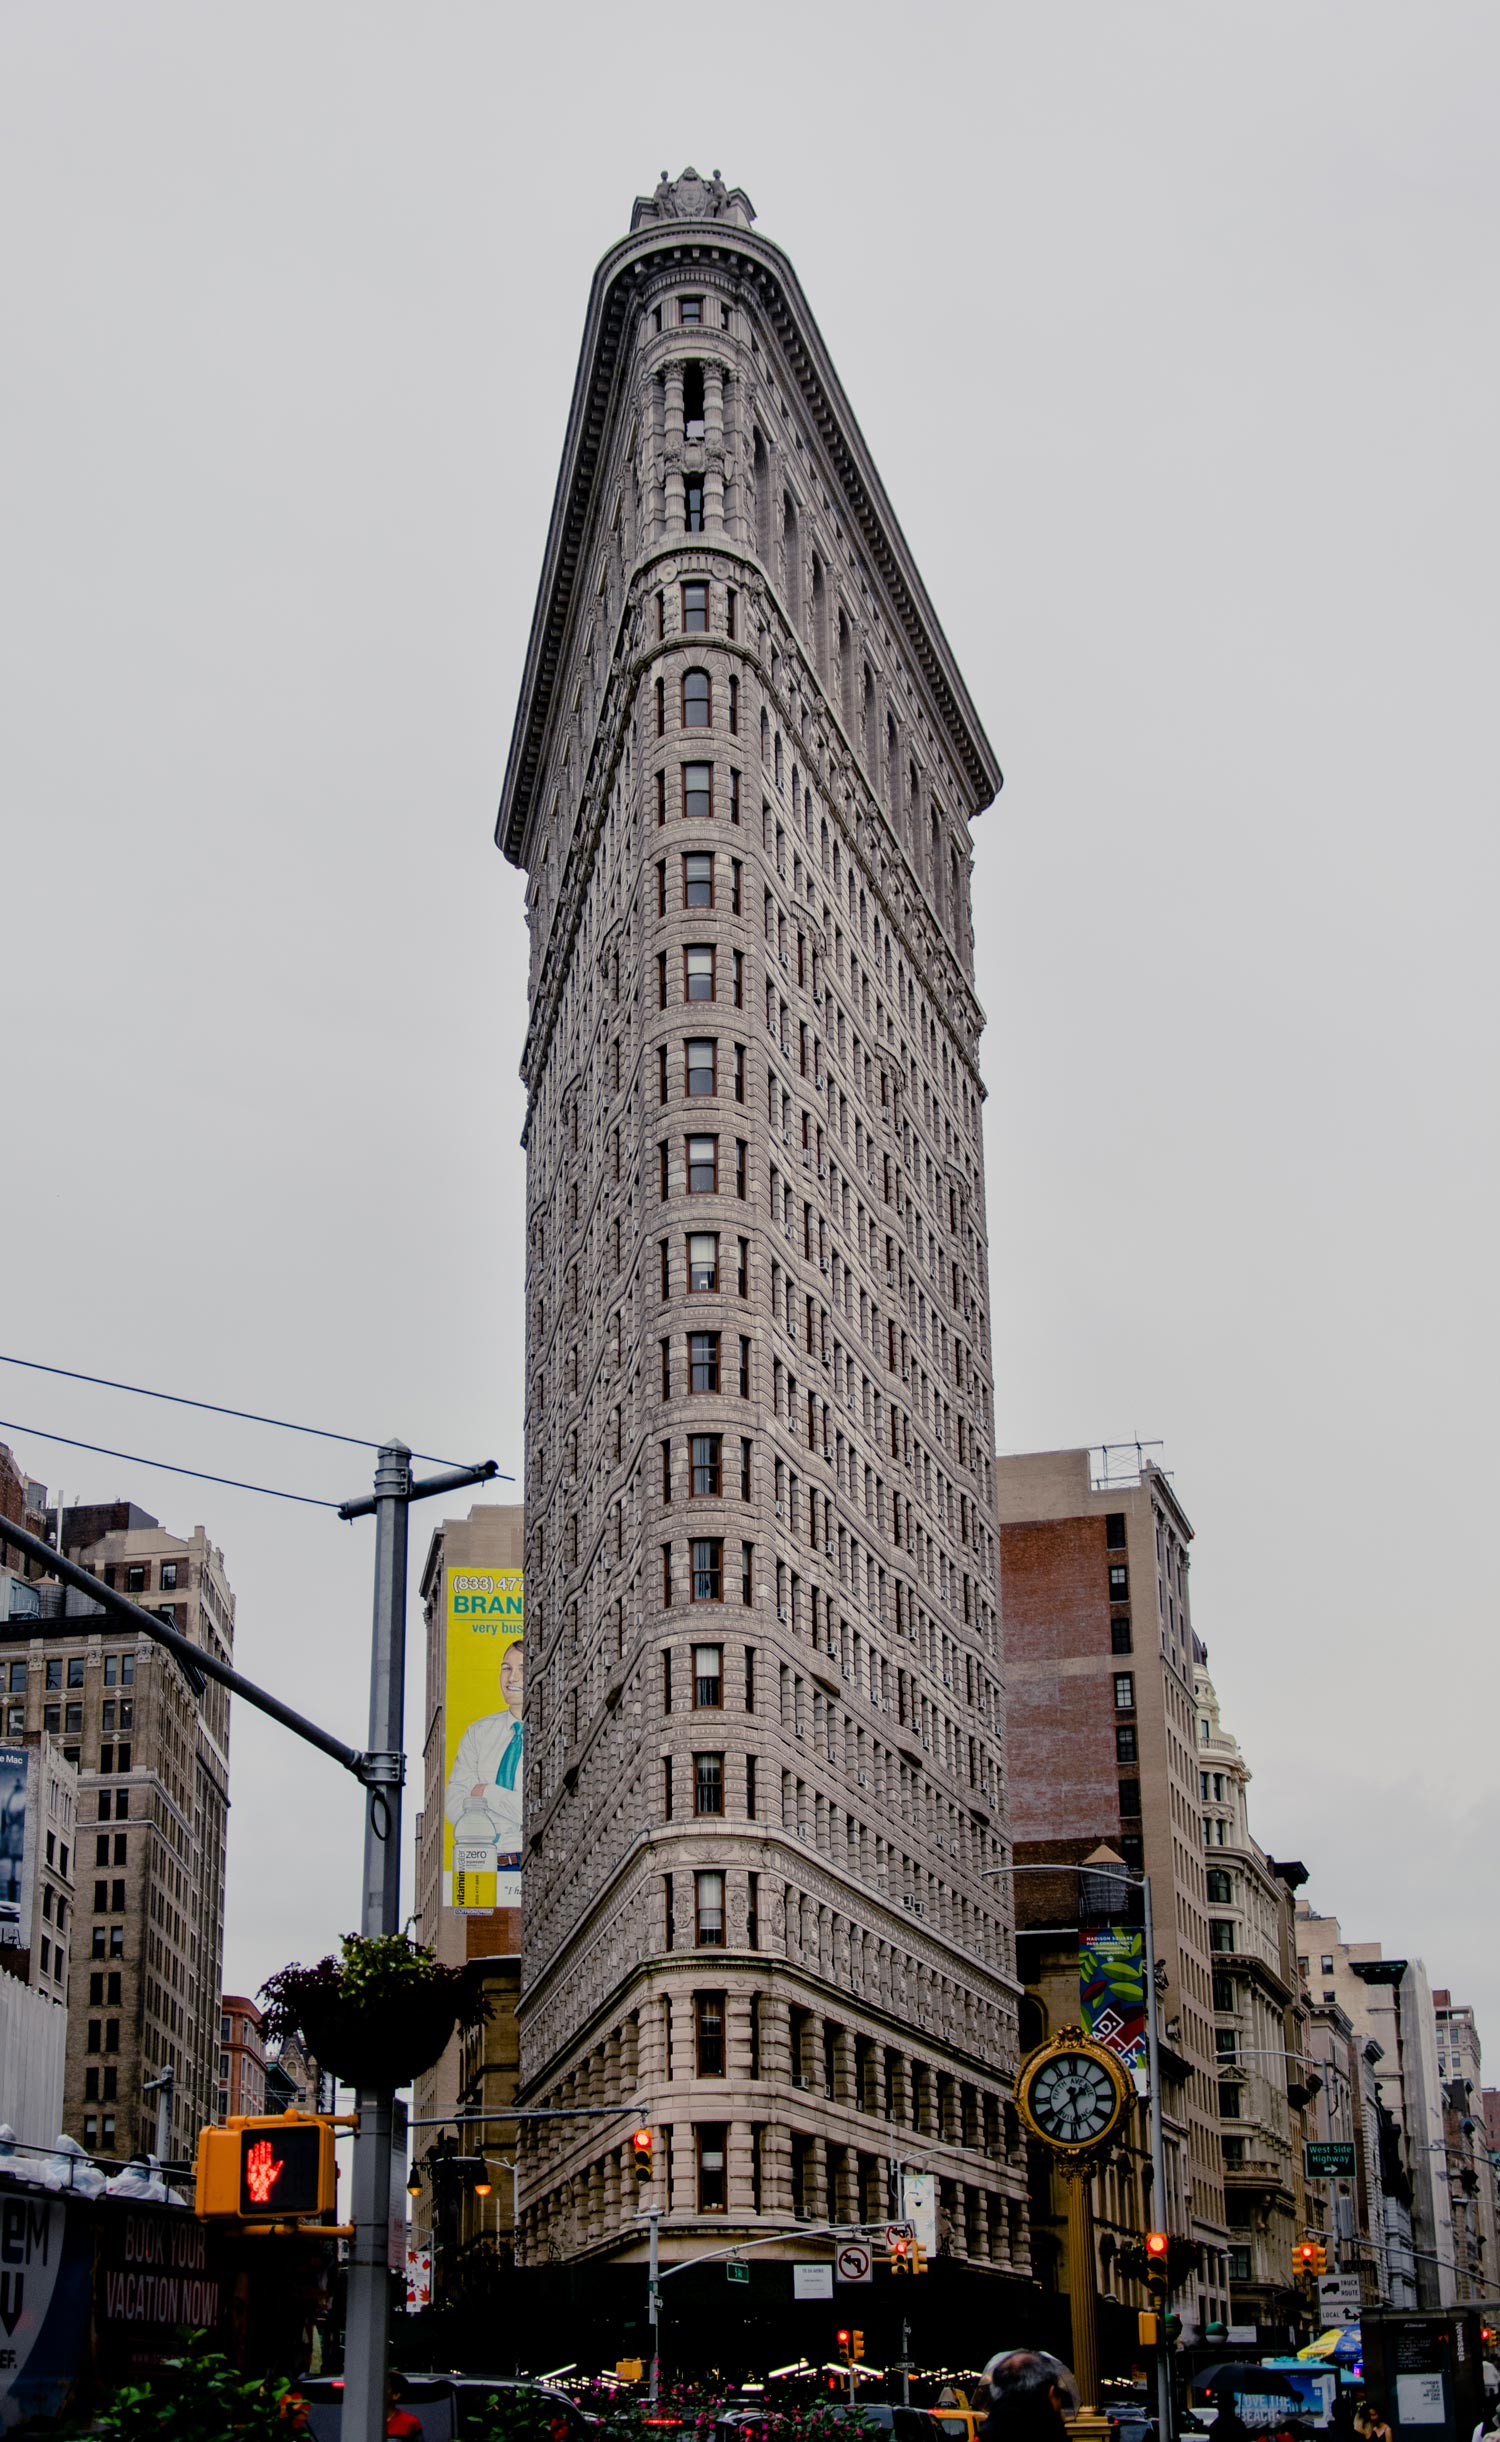 Flatiron_Building_New_York_City_2018_Ruo_Ling_Lu.jpg